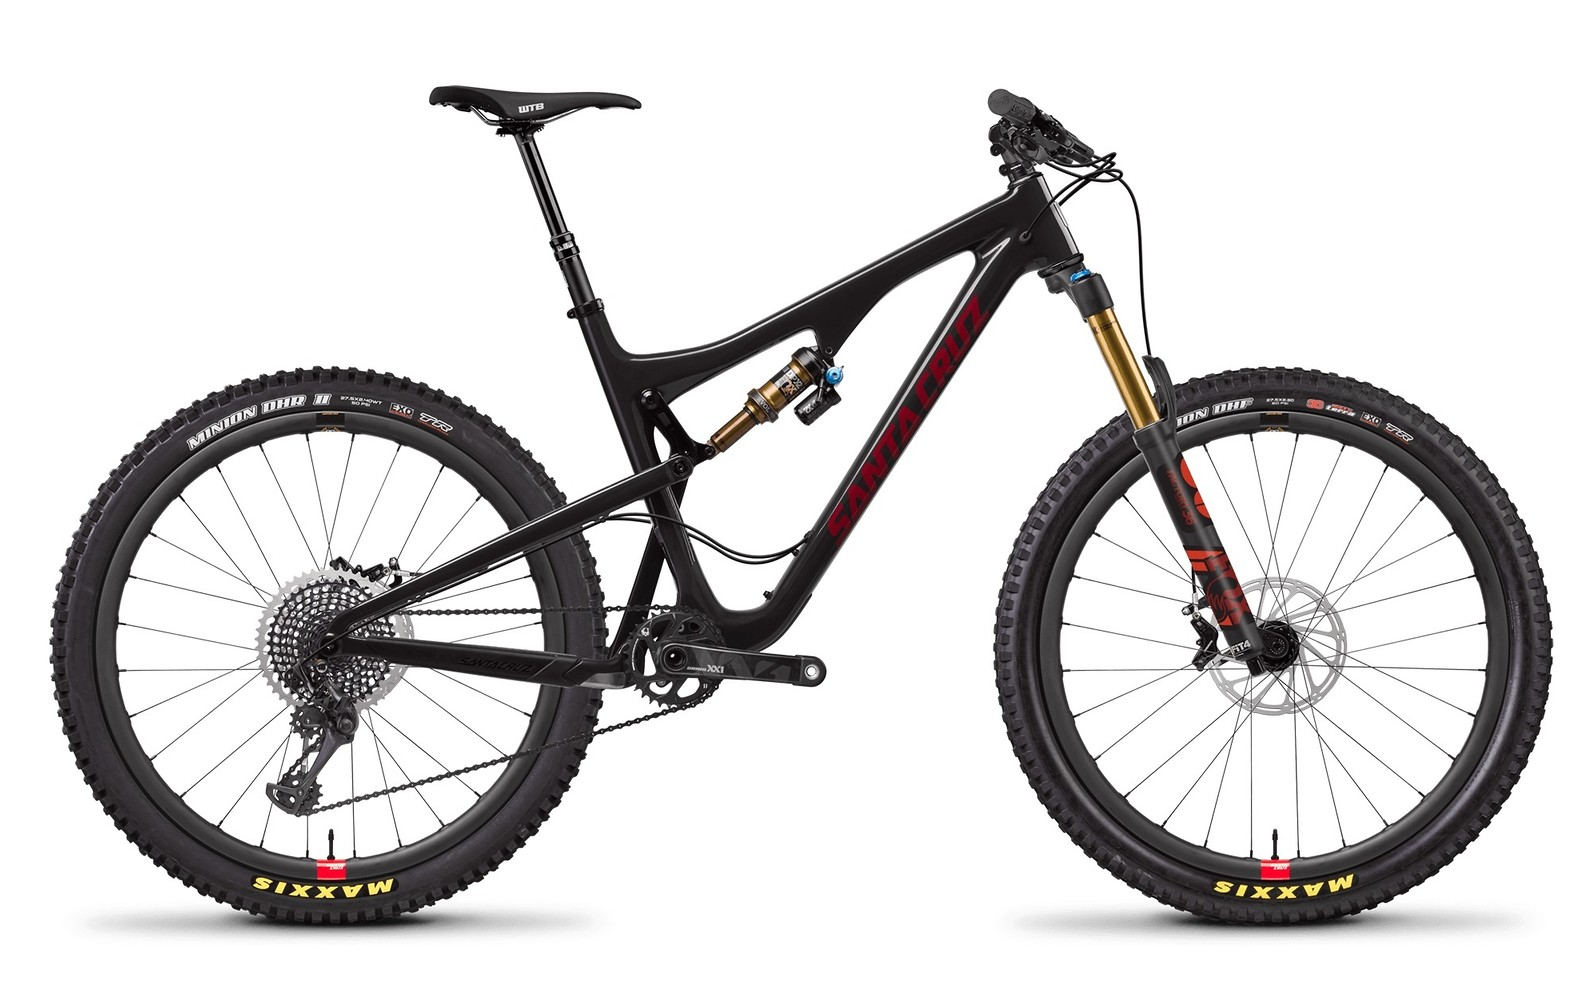 Bronson Carbon CC XX1 Gloss Black and Siracha with Reserve Wheel Upgrade